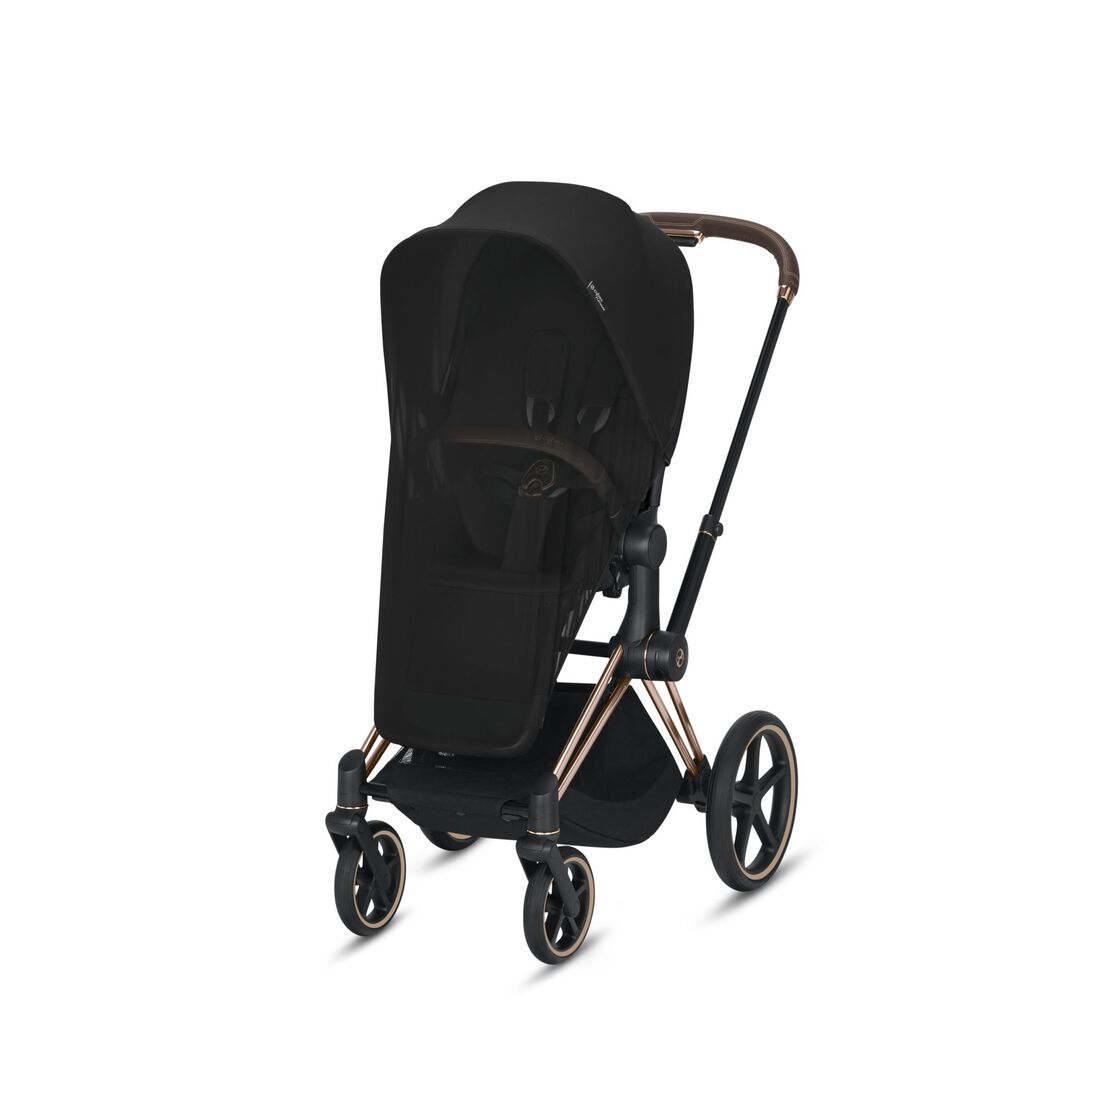 CYBEX Insect Net Lux Seats - Black in Black large image number 2